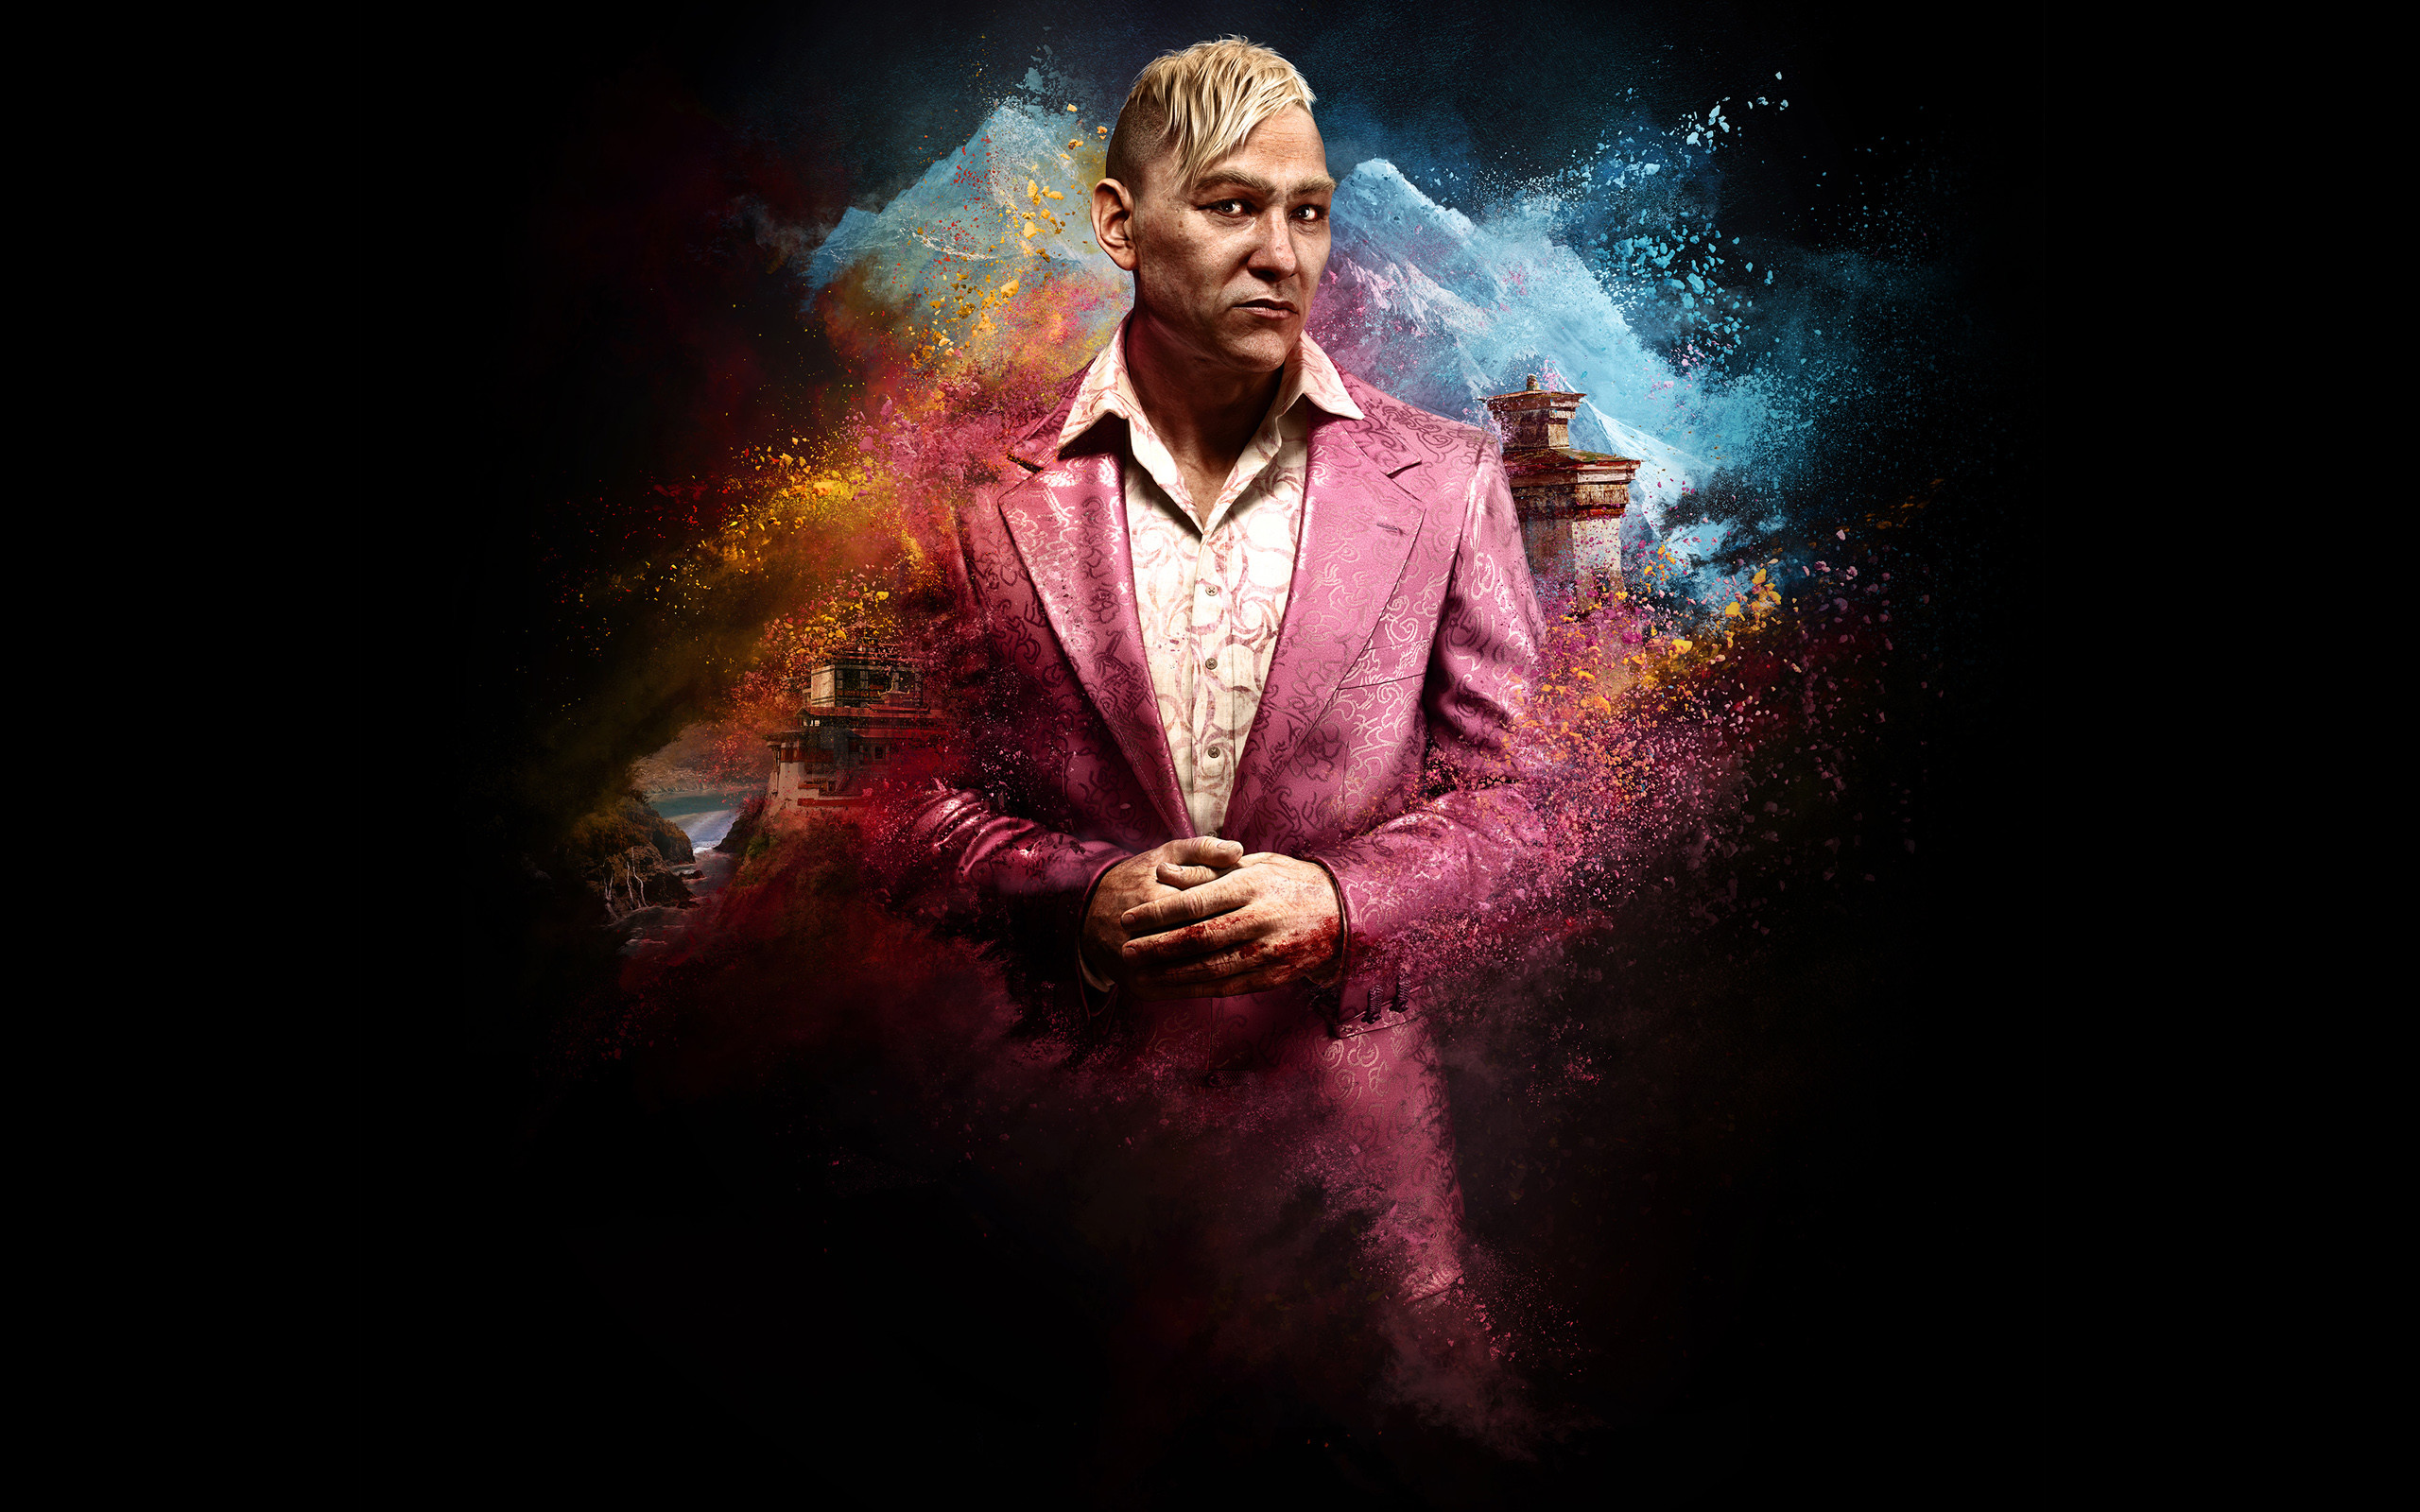 King Pagan Min in Far Cry 4 Wallpapers | HD Wallpapers